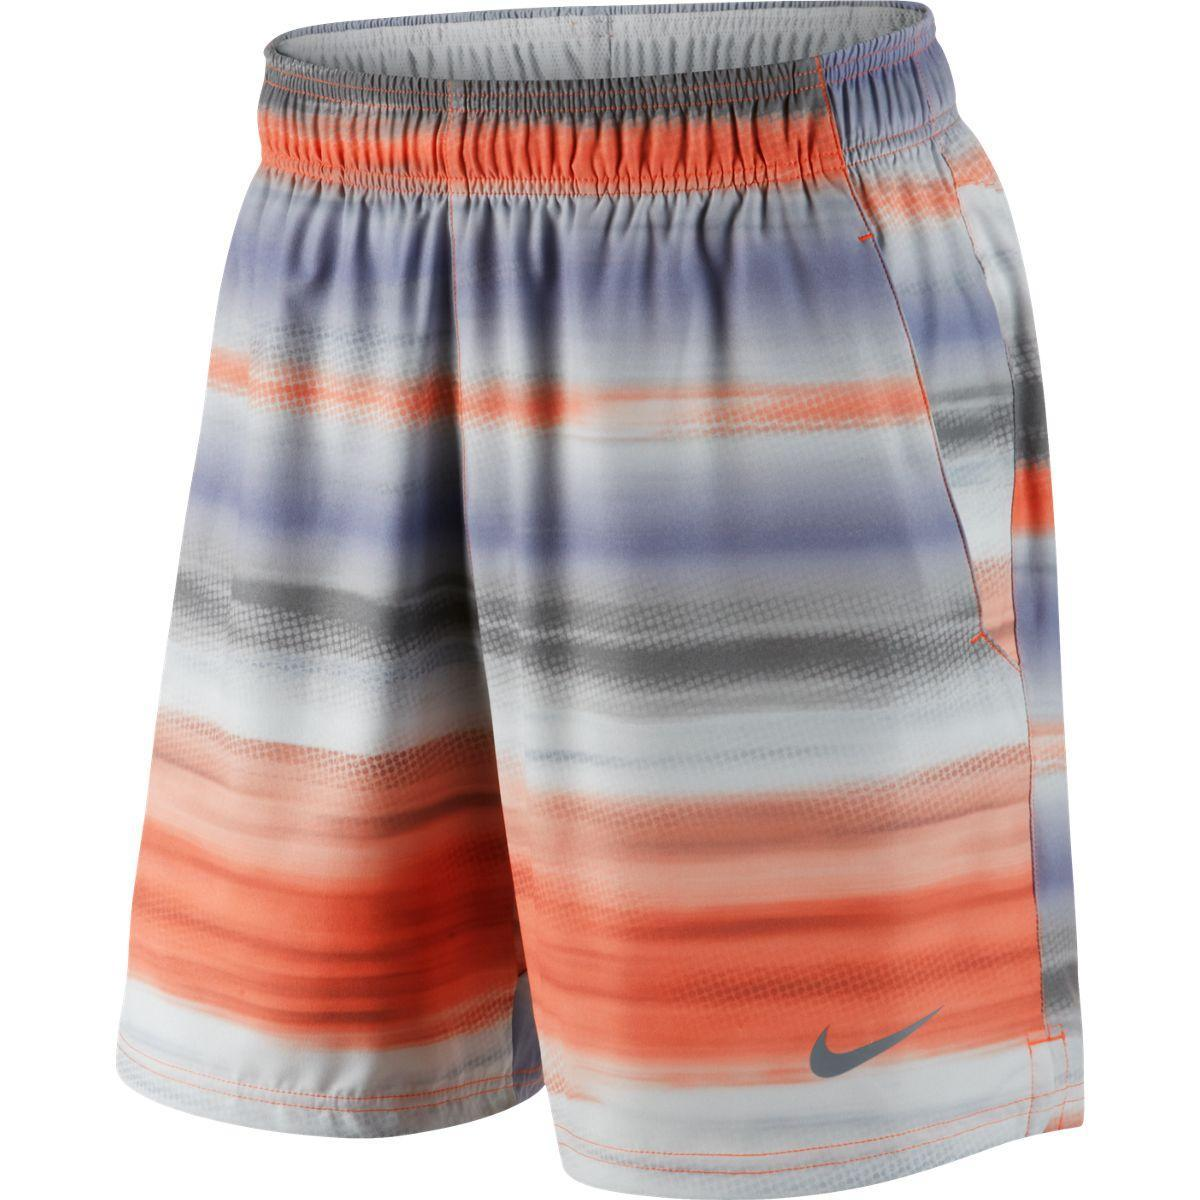 "Nike Mens Gladiator 8"" Shorts - Turf Orange/Cool Grey ..."